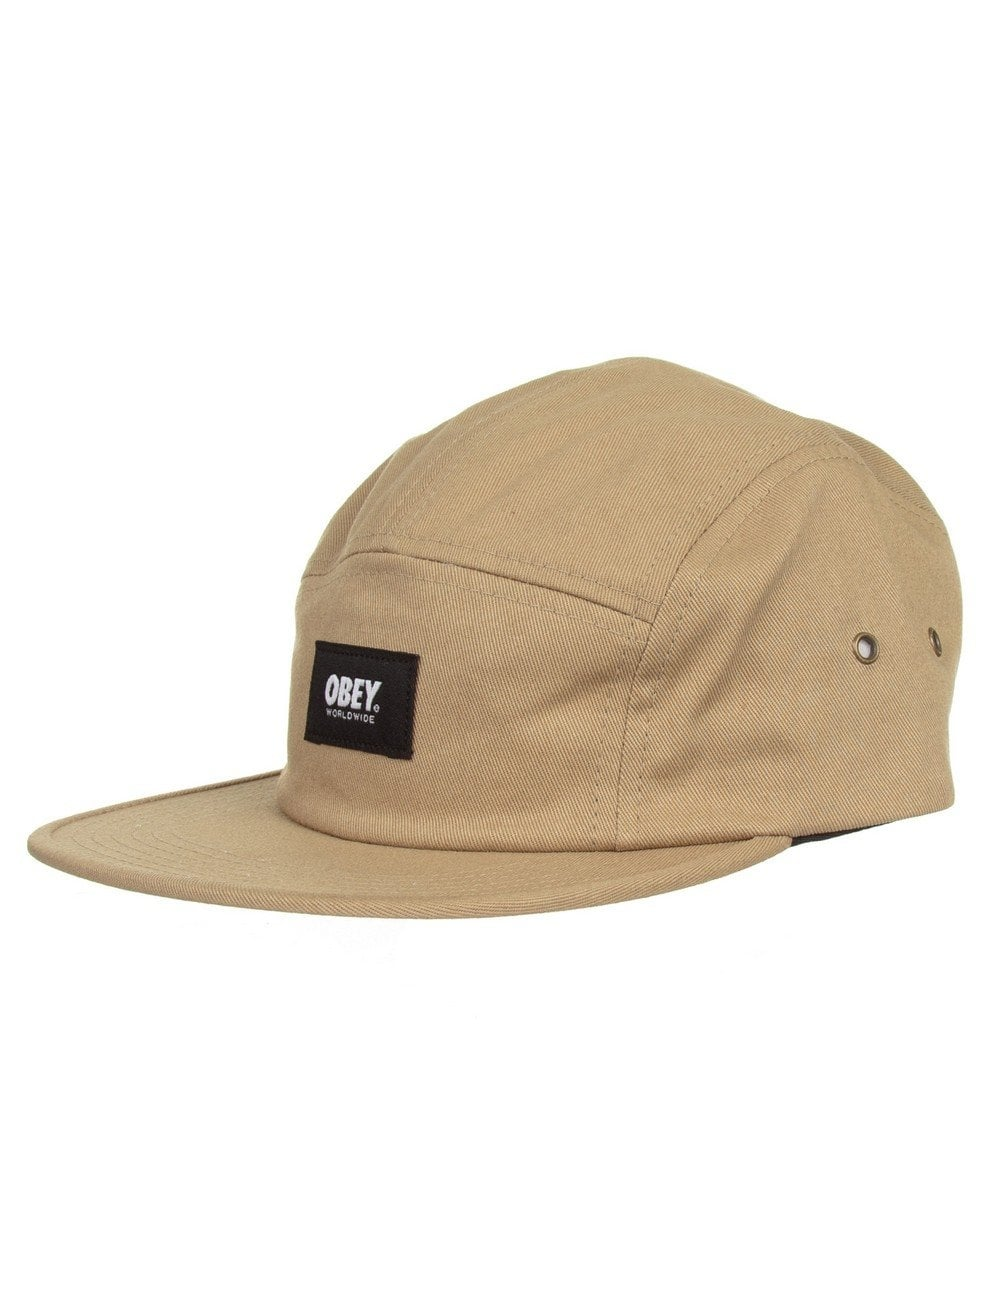 Obey Clothing Worldwide 5 Panel Hat - Khaki - Accessories from Fat ... 6e31c7fb5f4